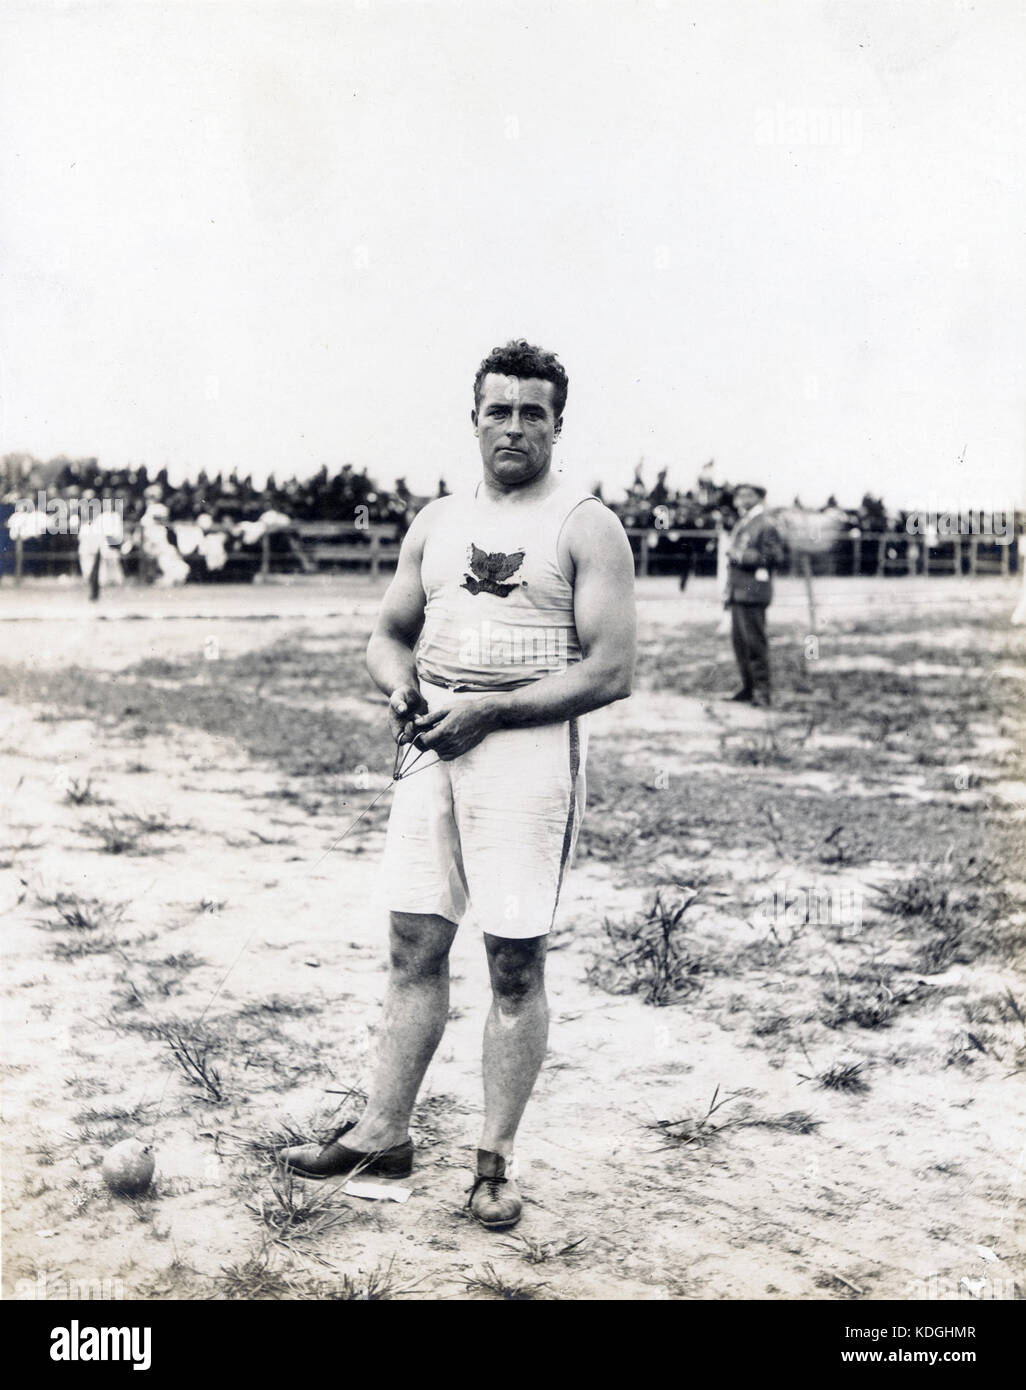 John Jesus Flannigan of the Greater New York Irish Athletic Association, winner of the 16 pound hammer throw at - Stock Image